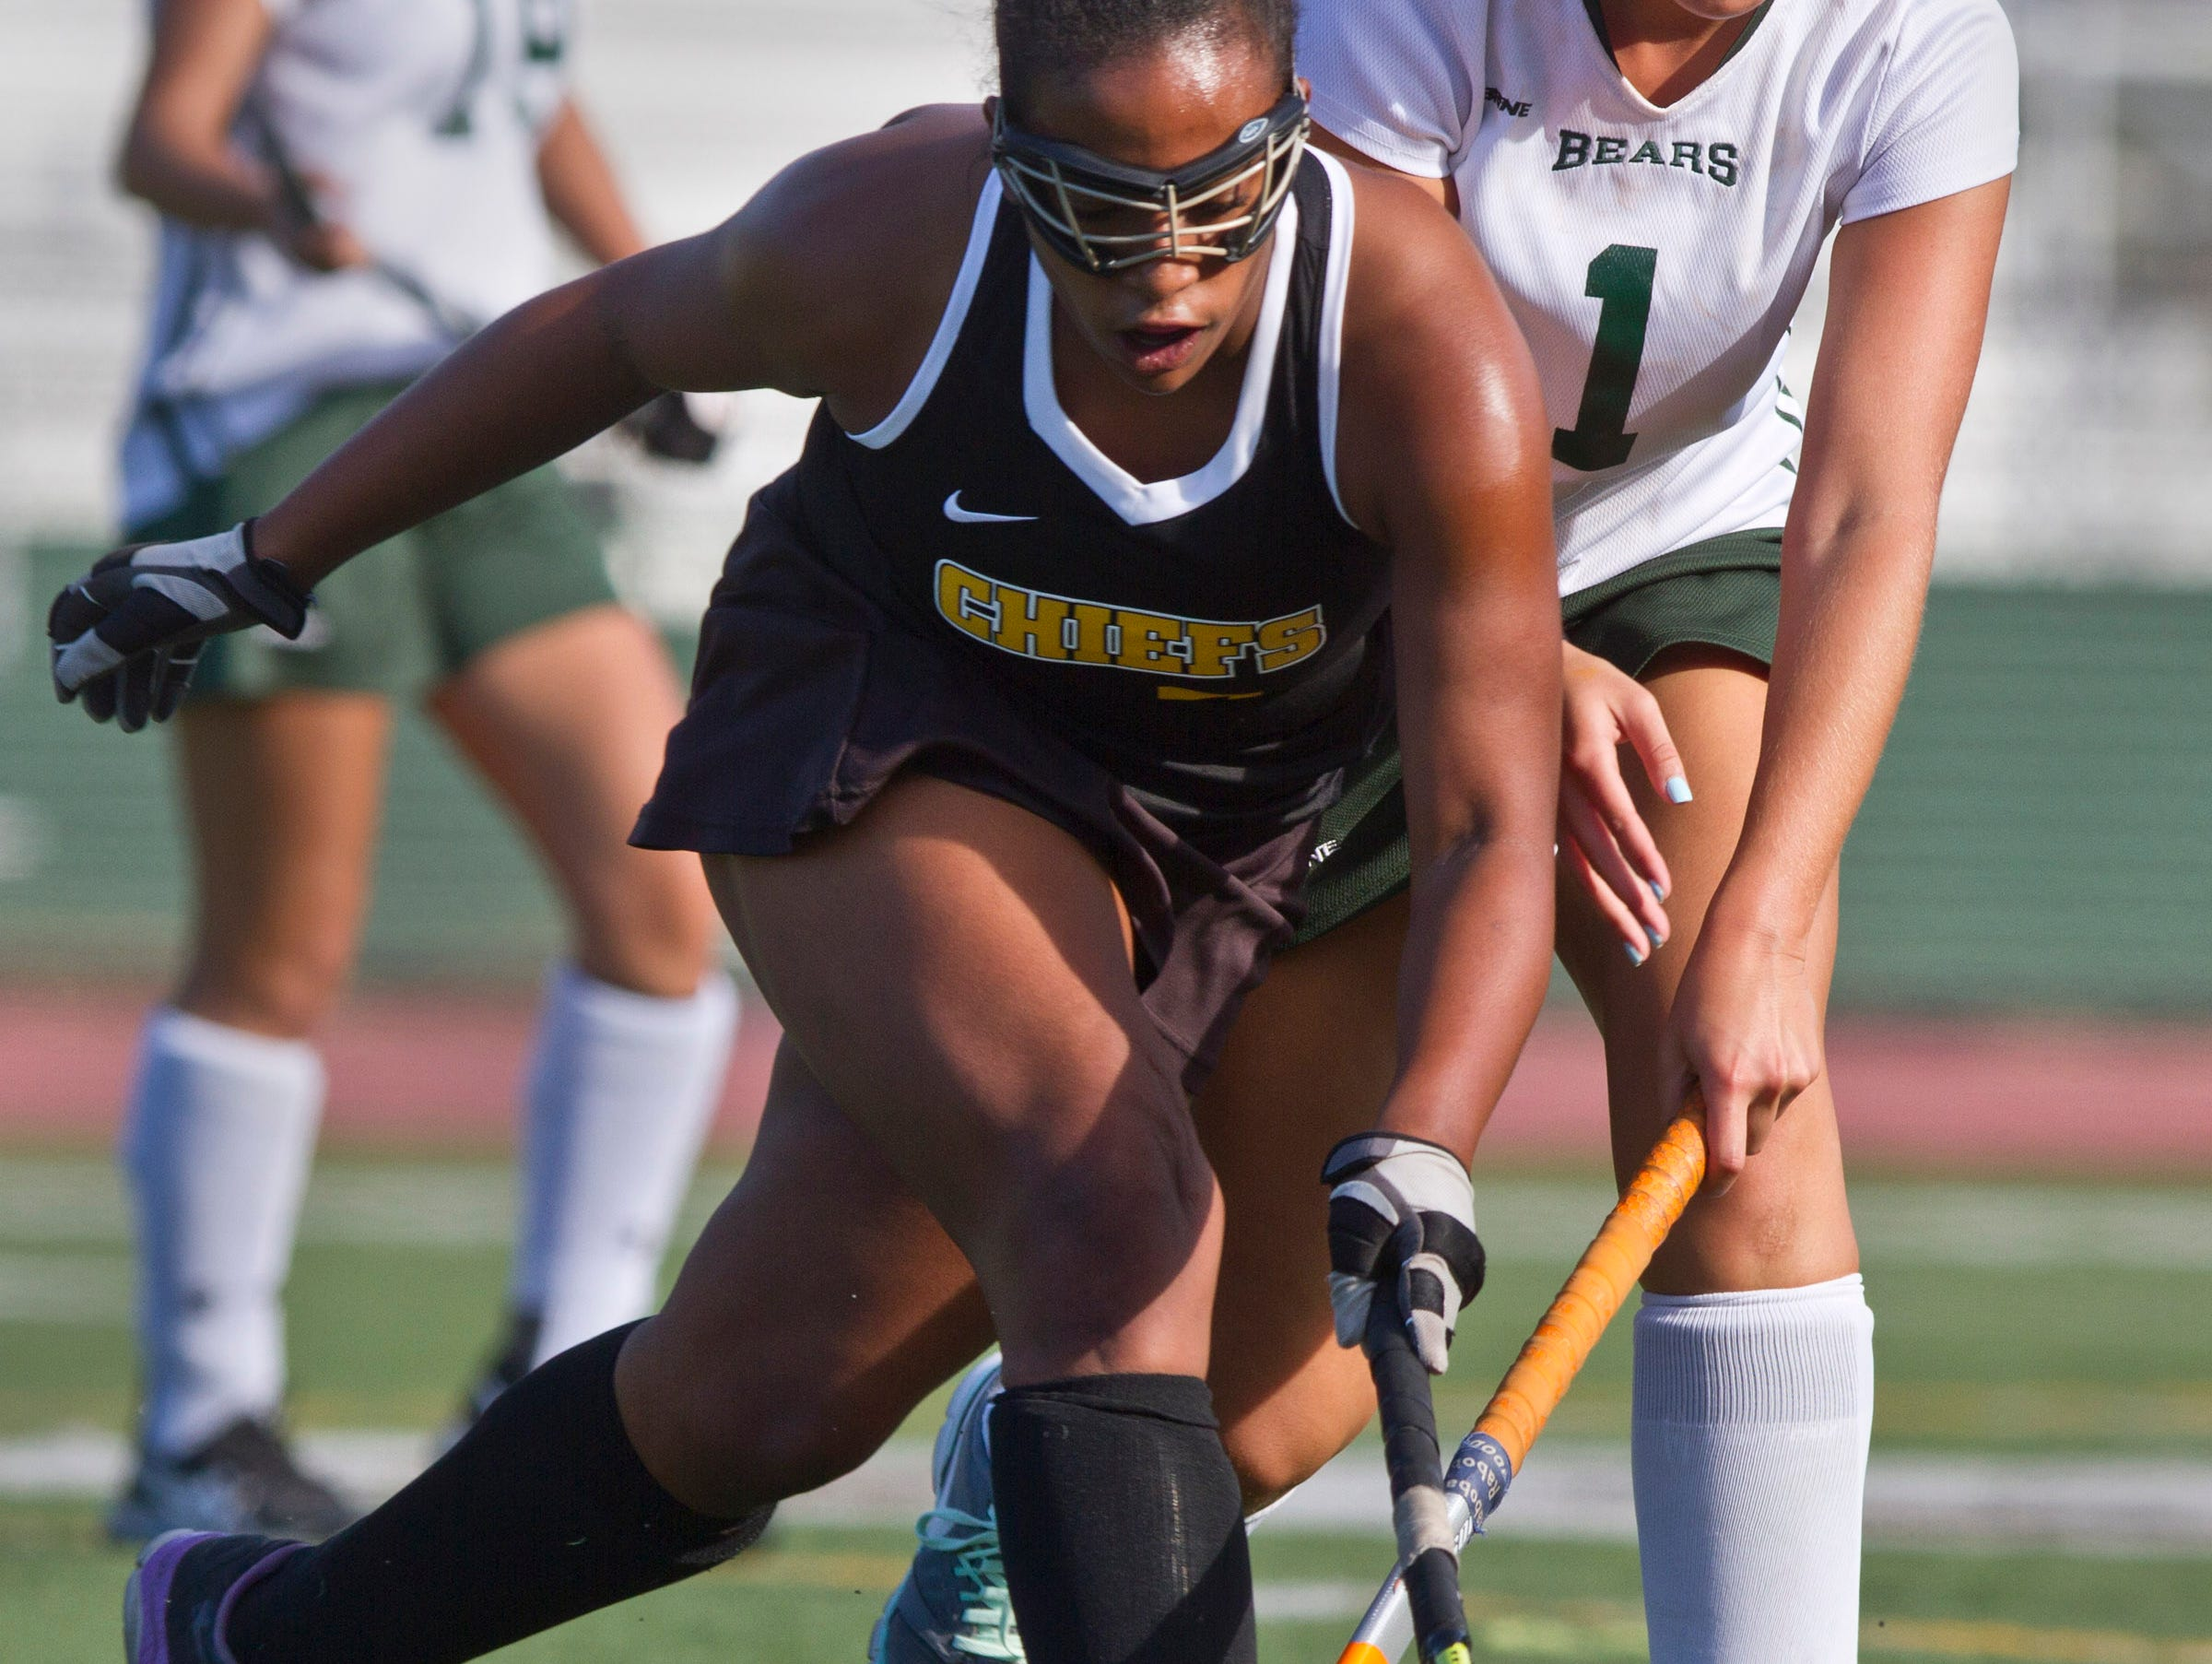 Piscataway's Imanni Reeves takes the ball from East Brunswick's Rochelle Podolsky. Piscataway vs East Brunswick field hockey. 72670492 East Brunswick, NJ Thursday, September 24, 2015 @dhoodhood